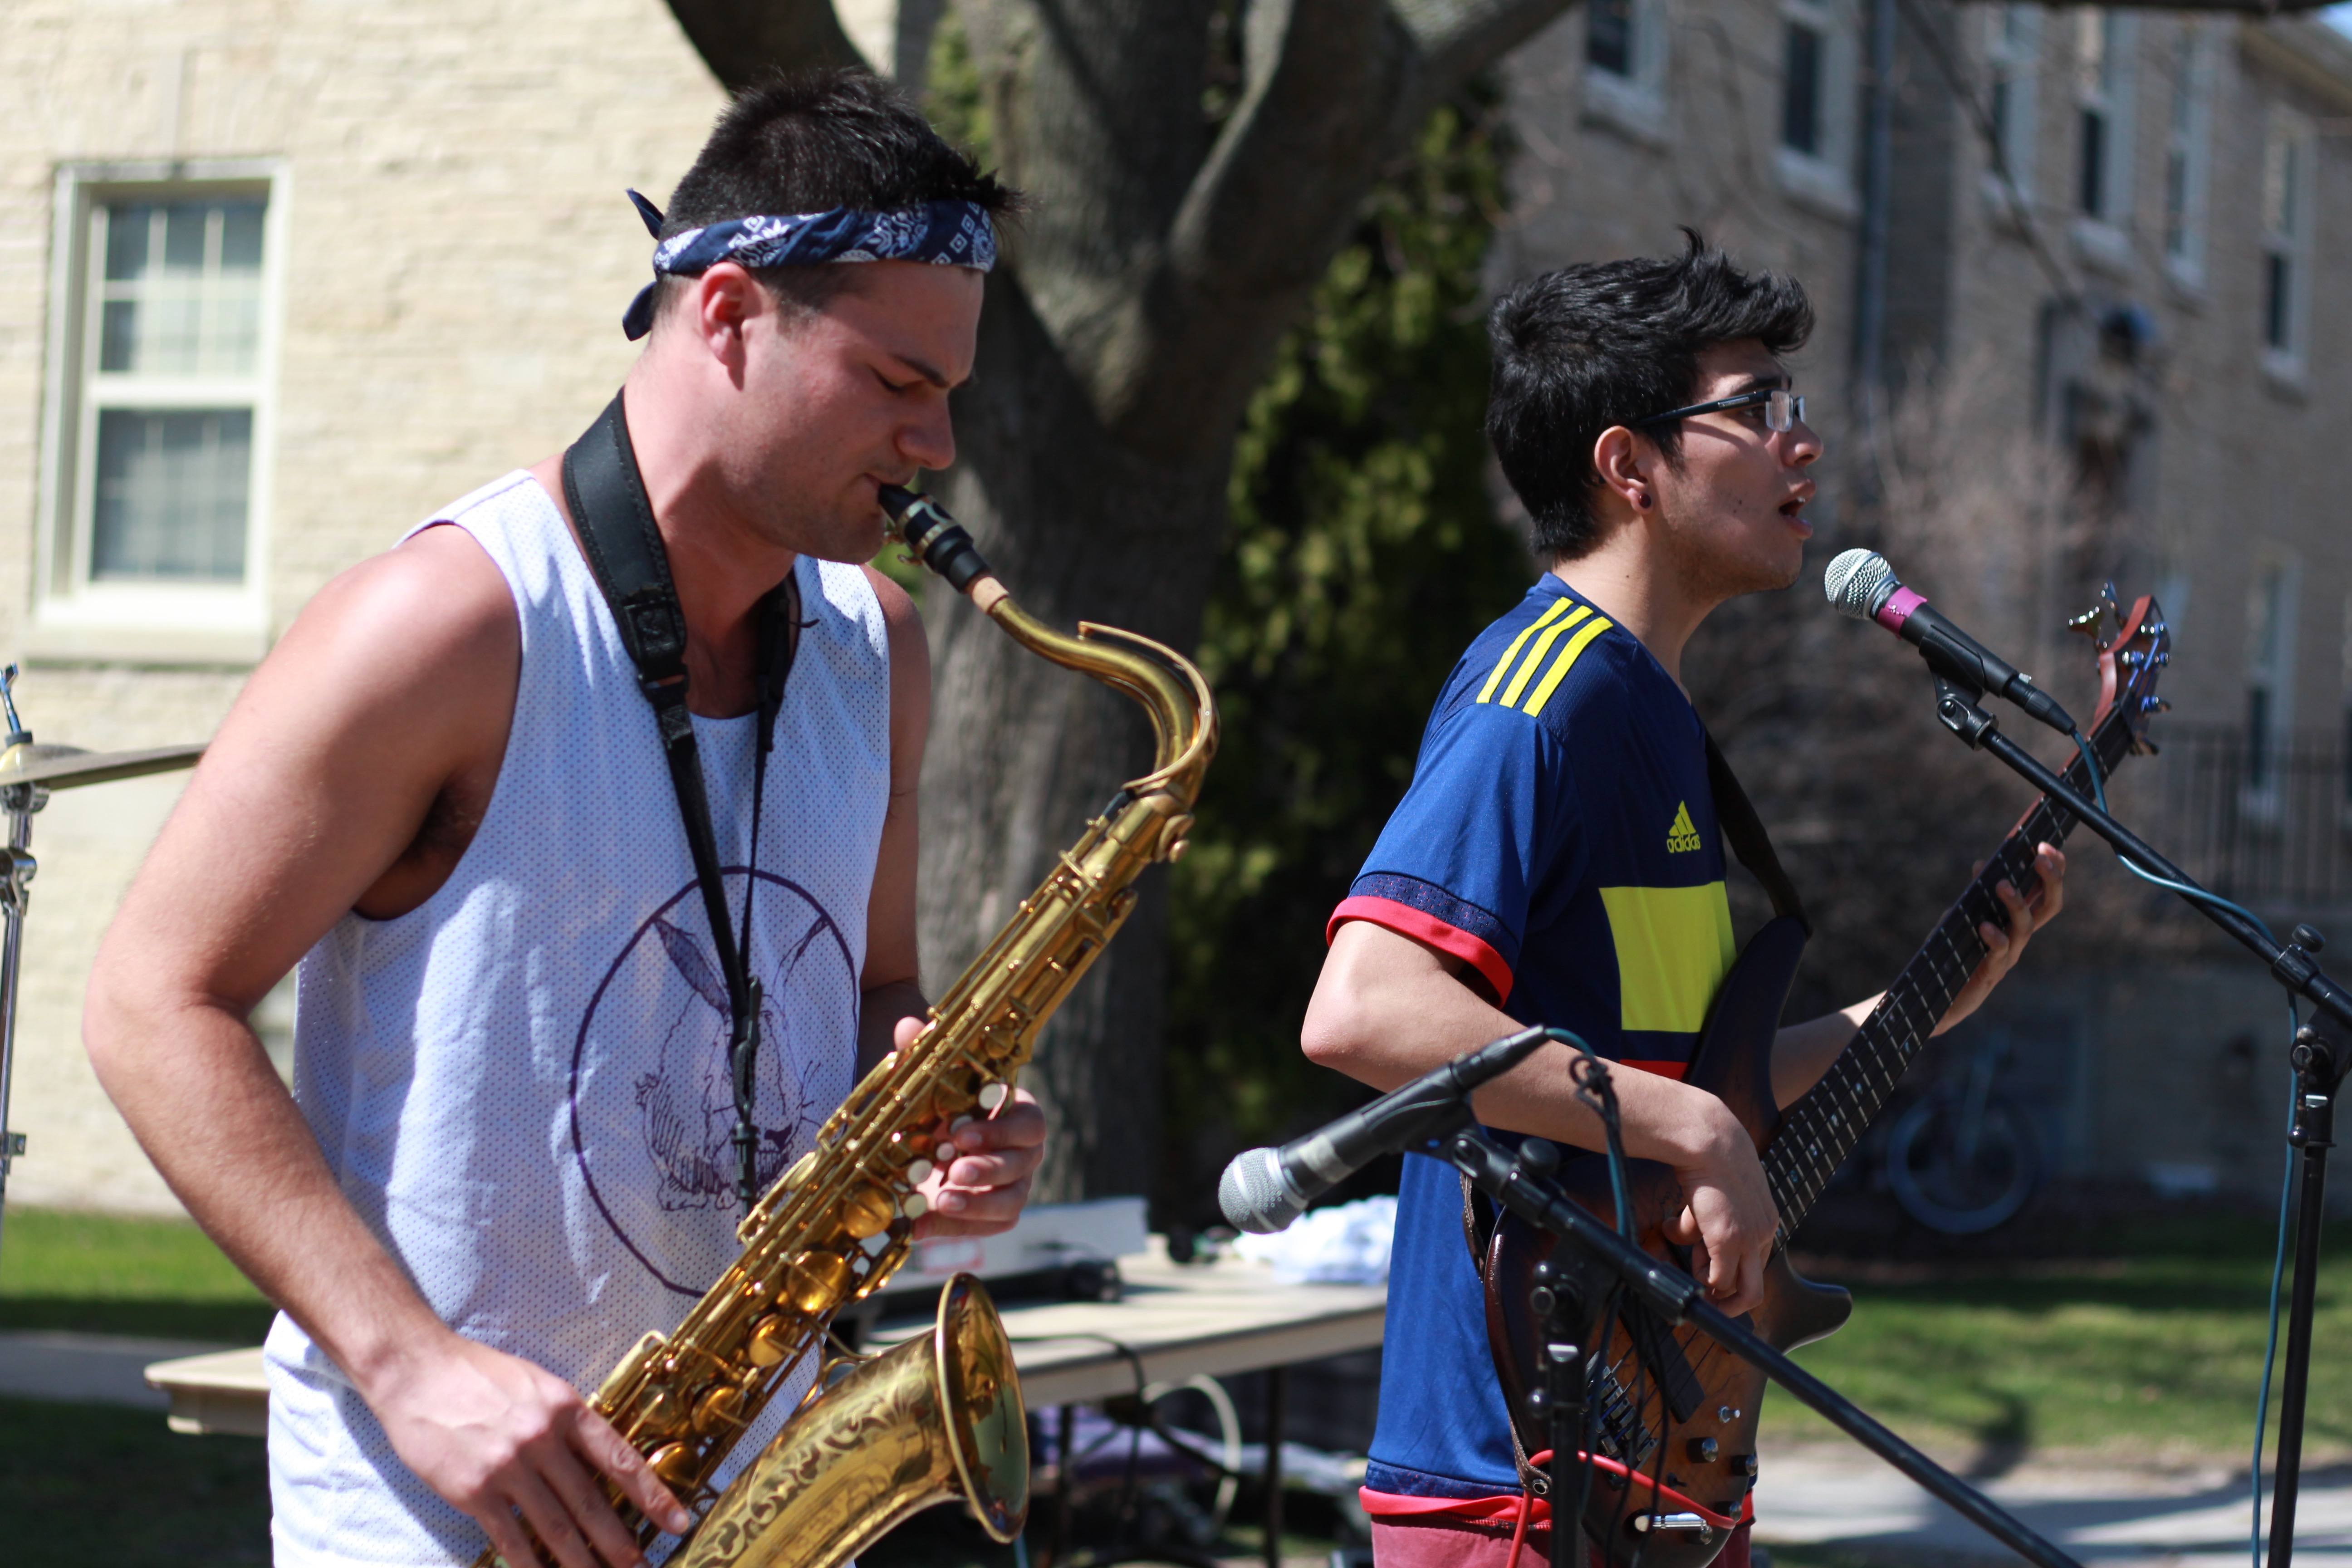 Sophomores Mason Krelitz and Christian Rasmussen play for the fundraiser in their band Rat Park.